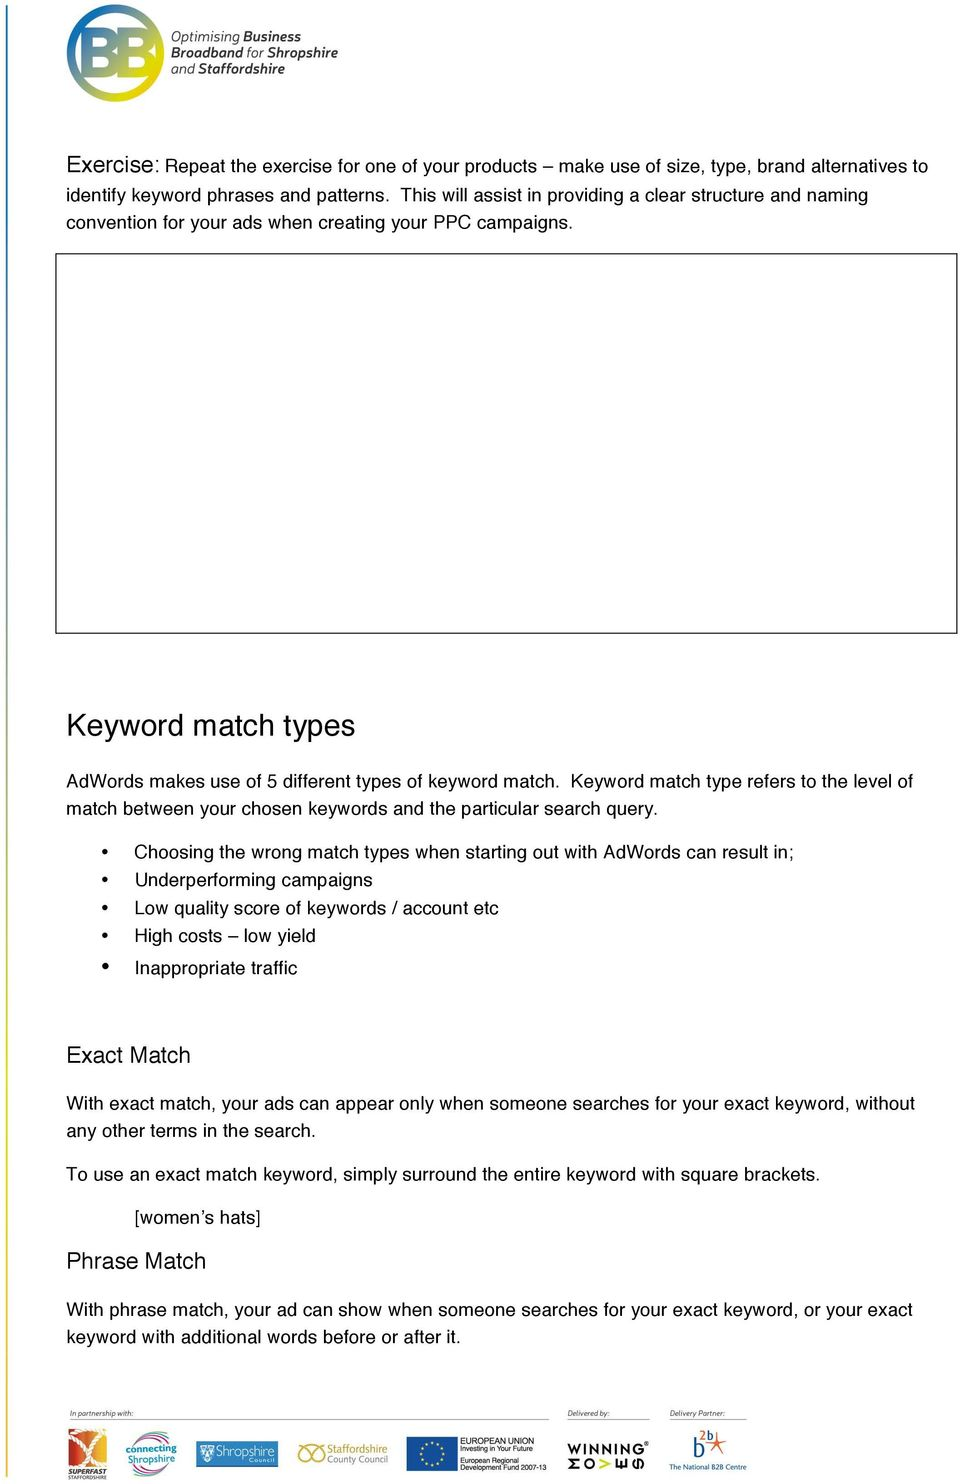 Keyword match type refers to the level of match between your chosen keywords and the particular search query.